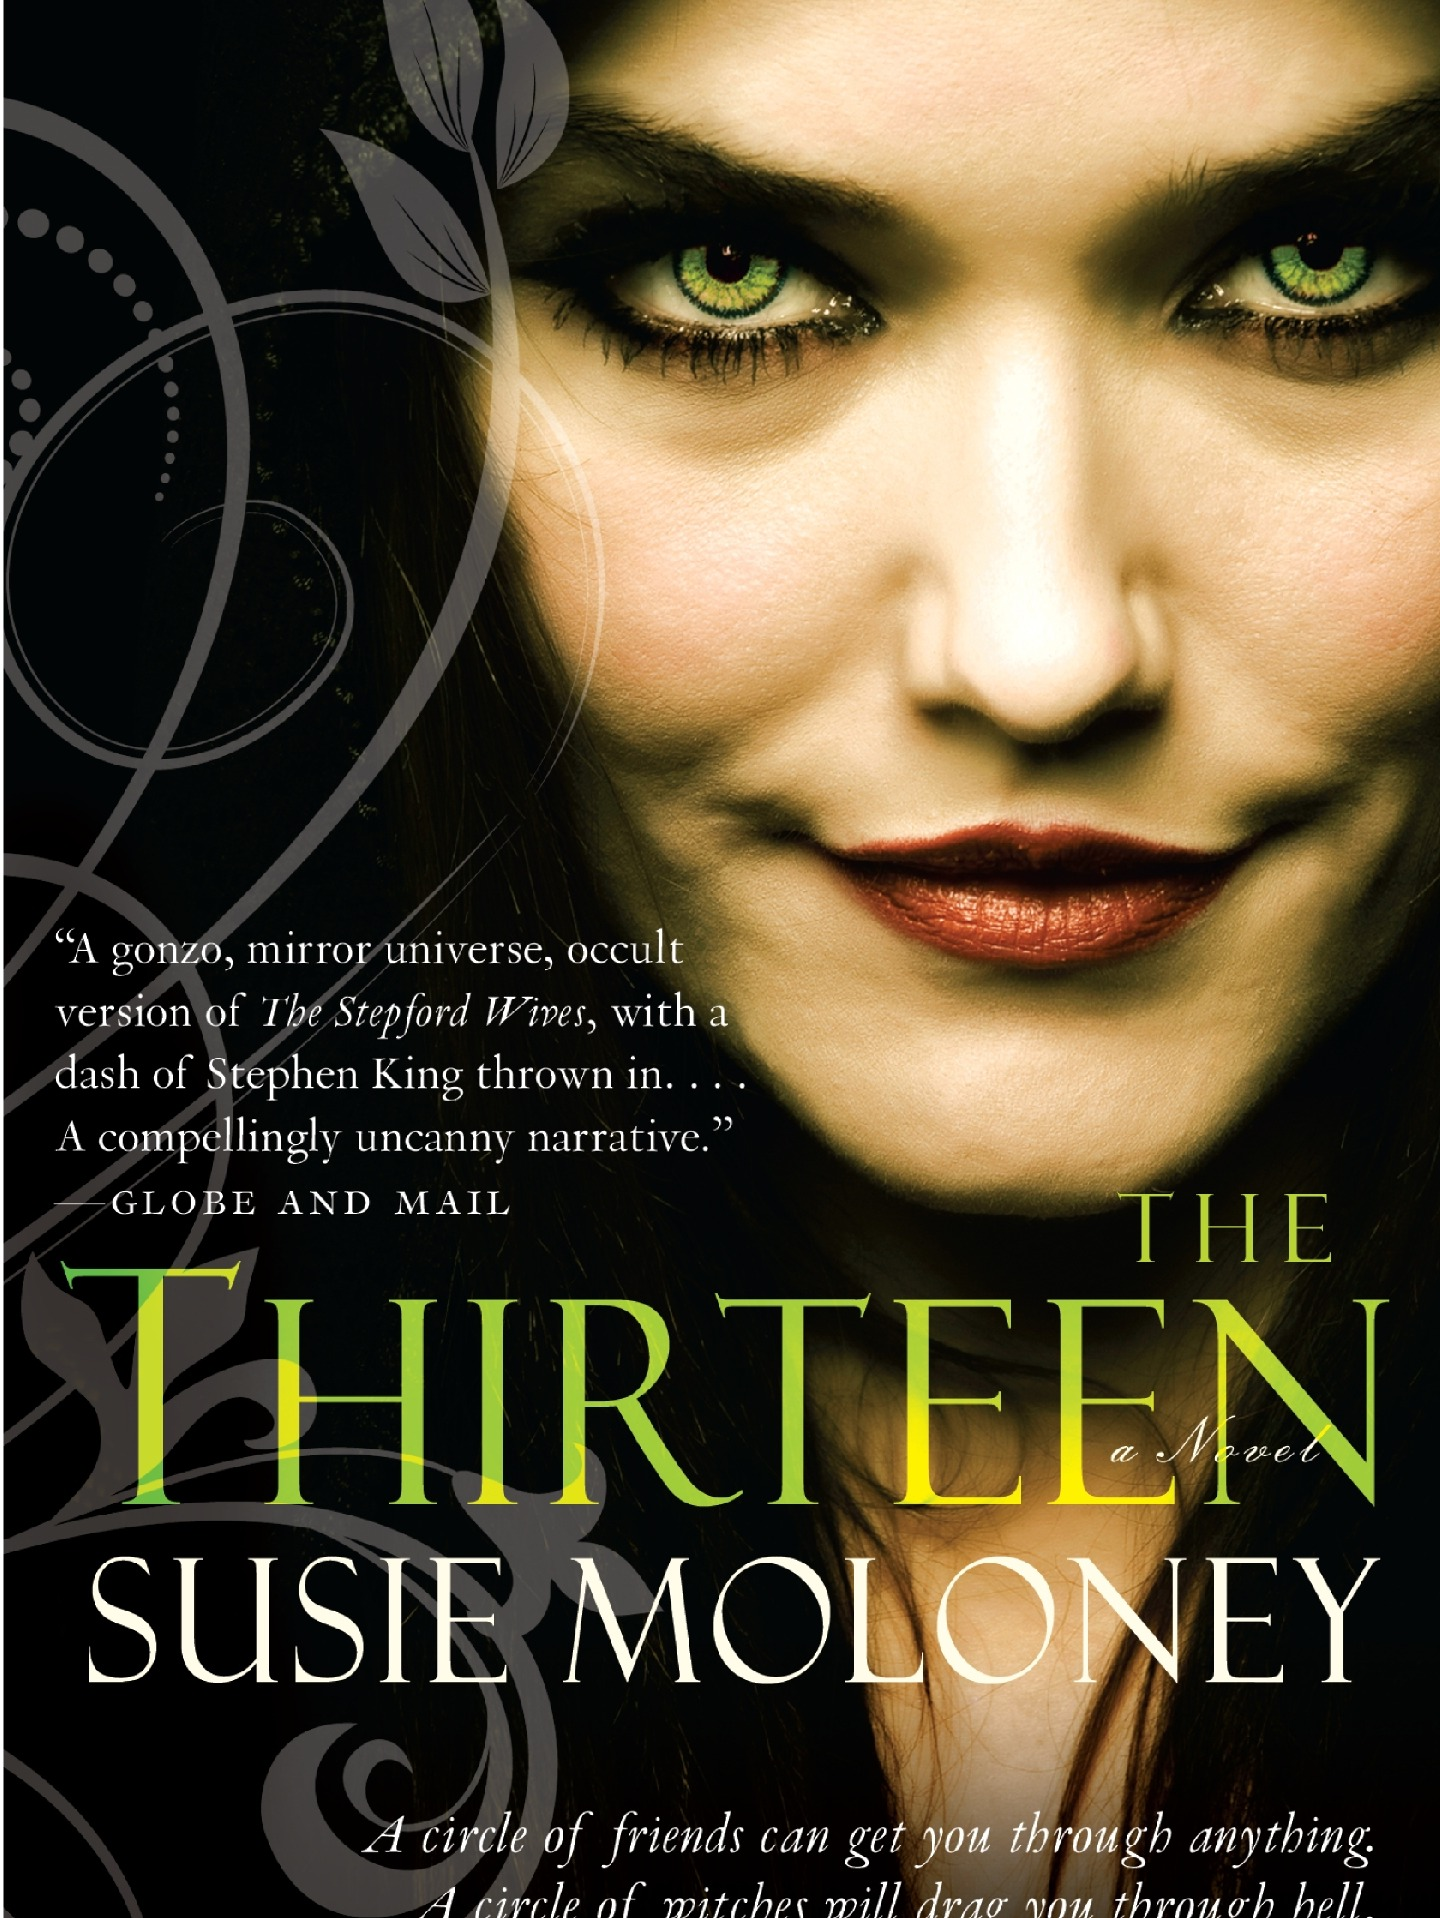 The Thirteen by Susie Maloney